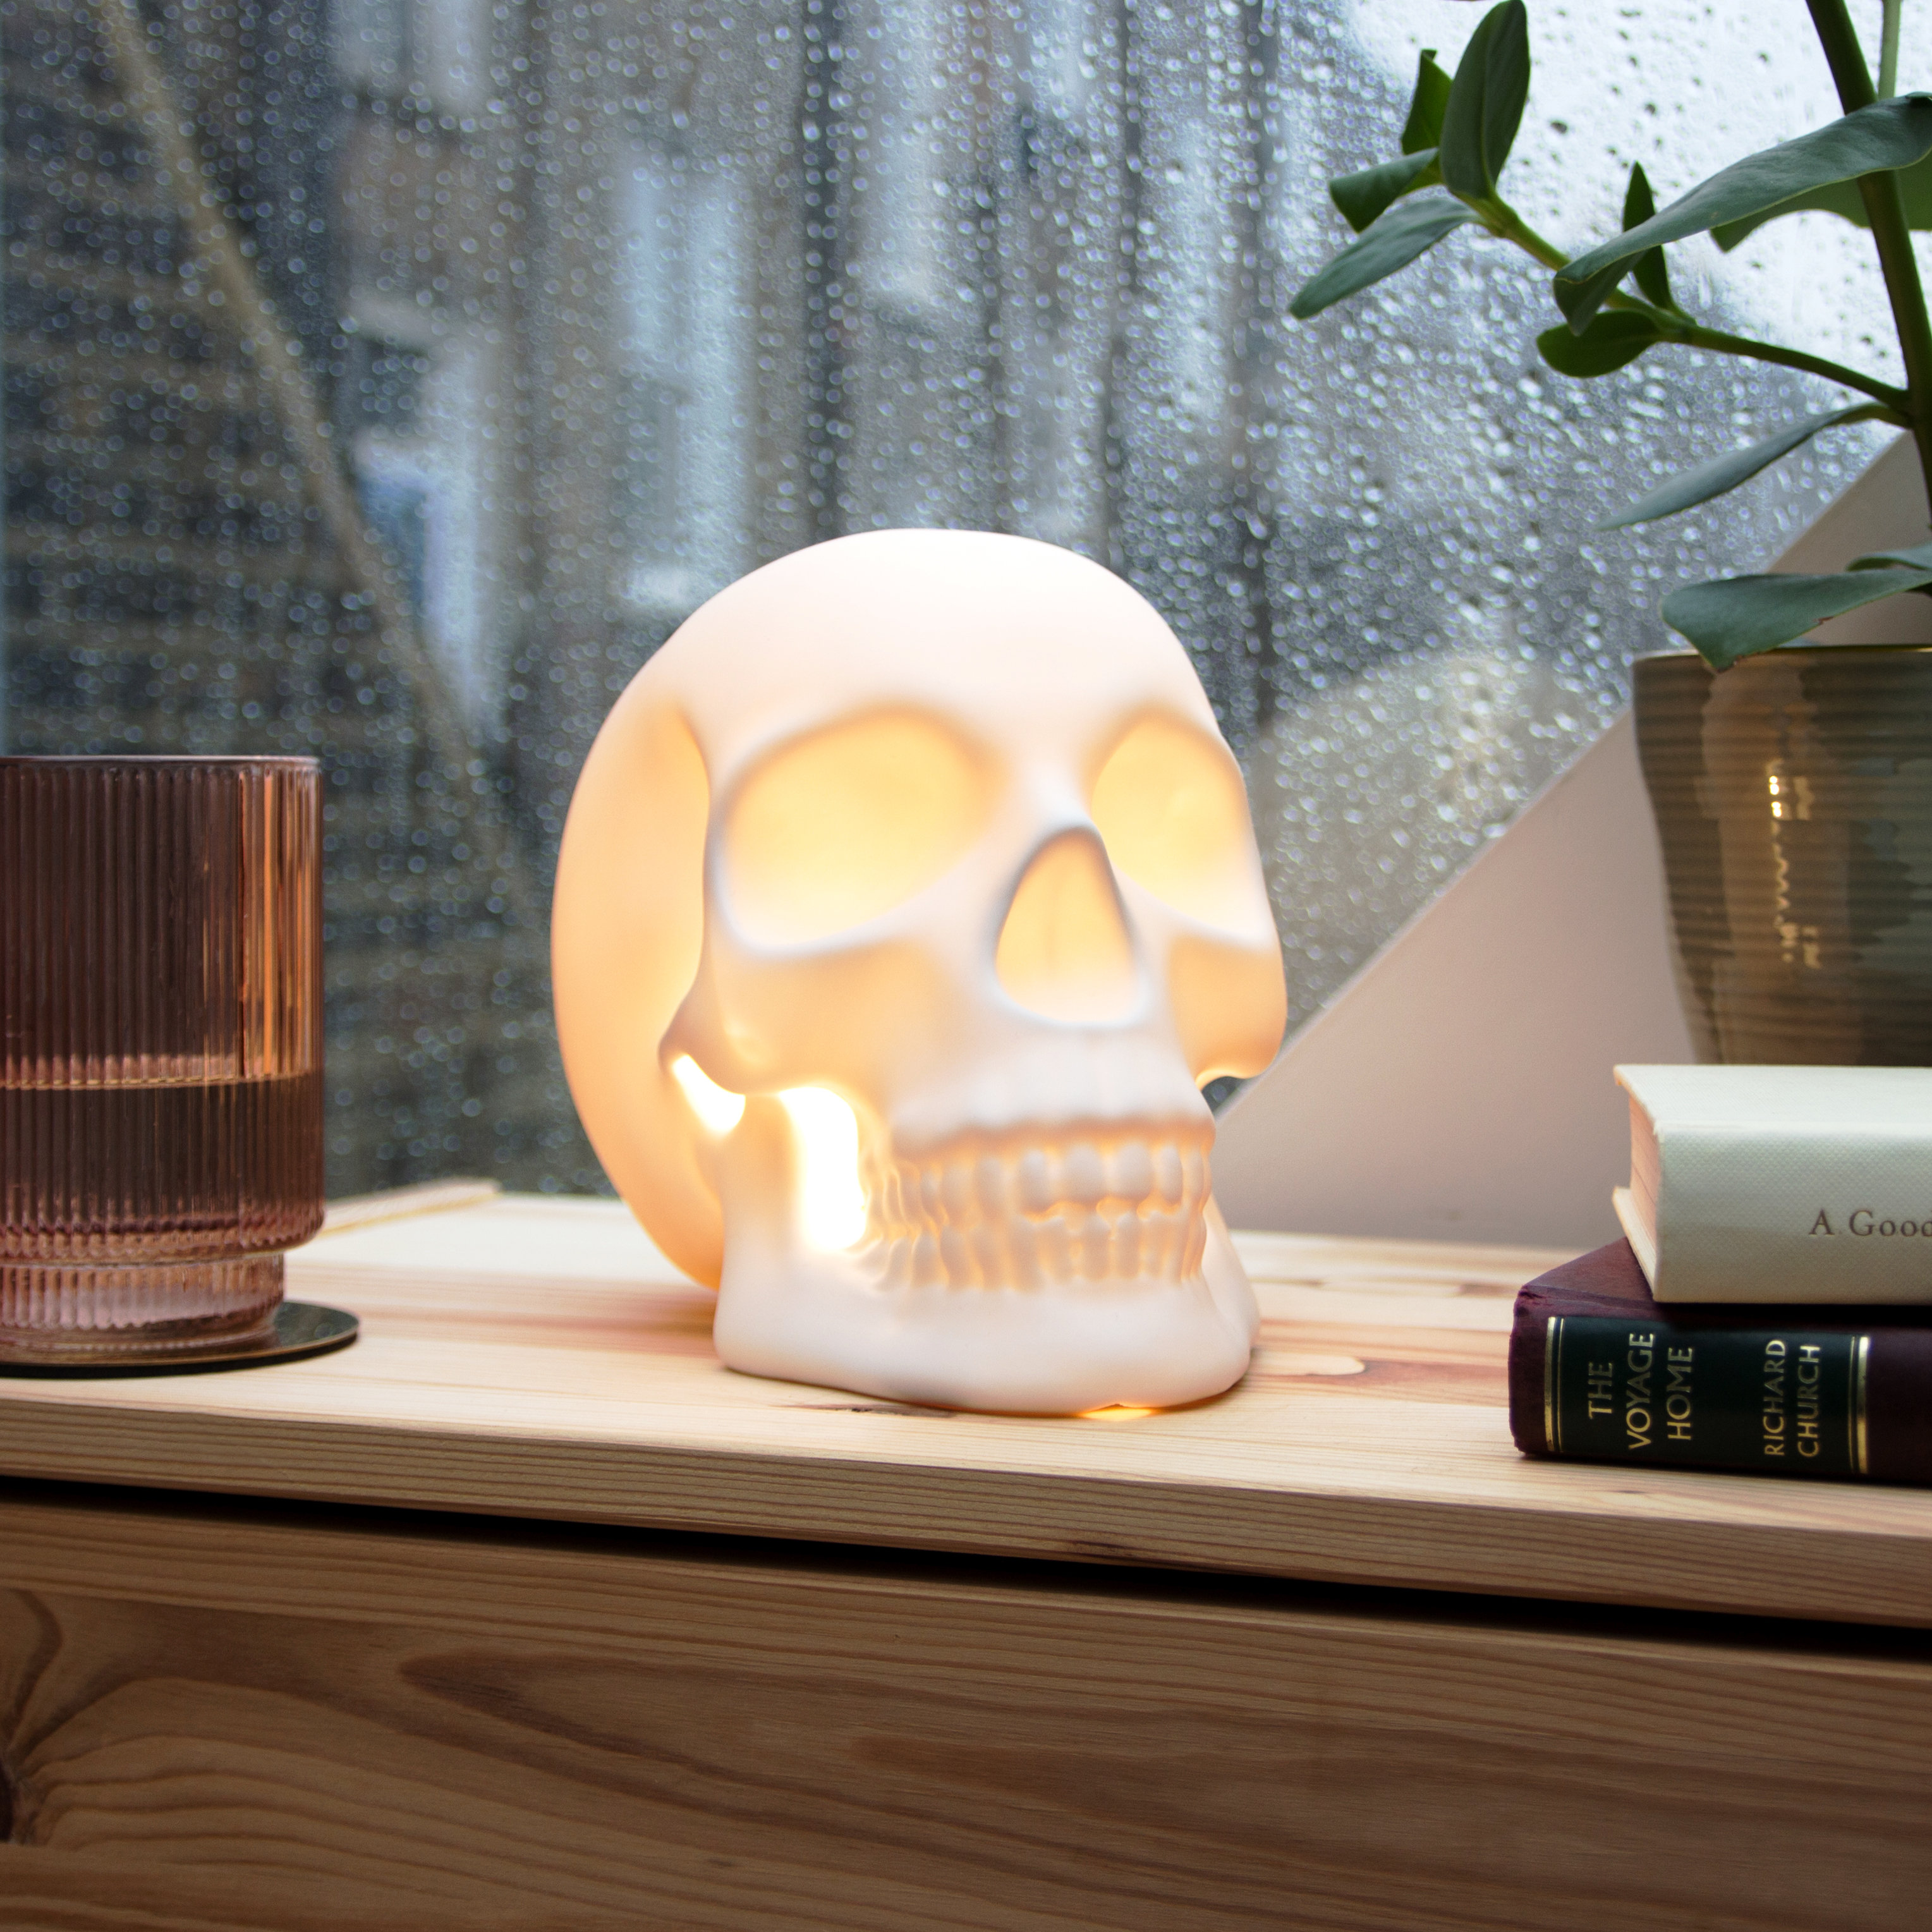 Skull lamp from front on bedside table